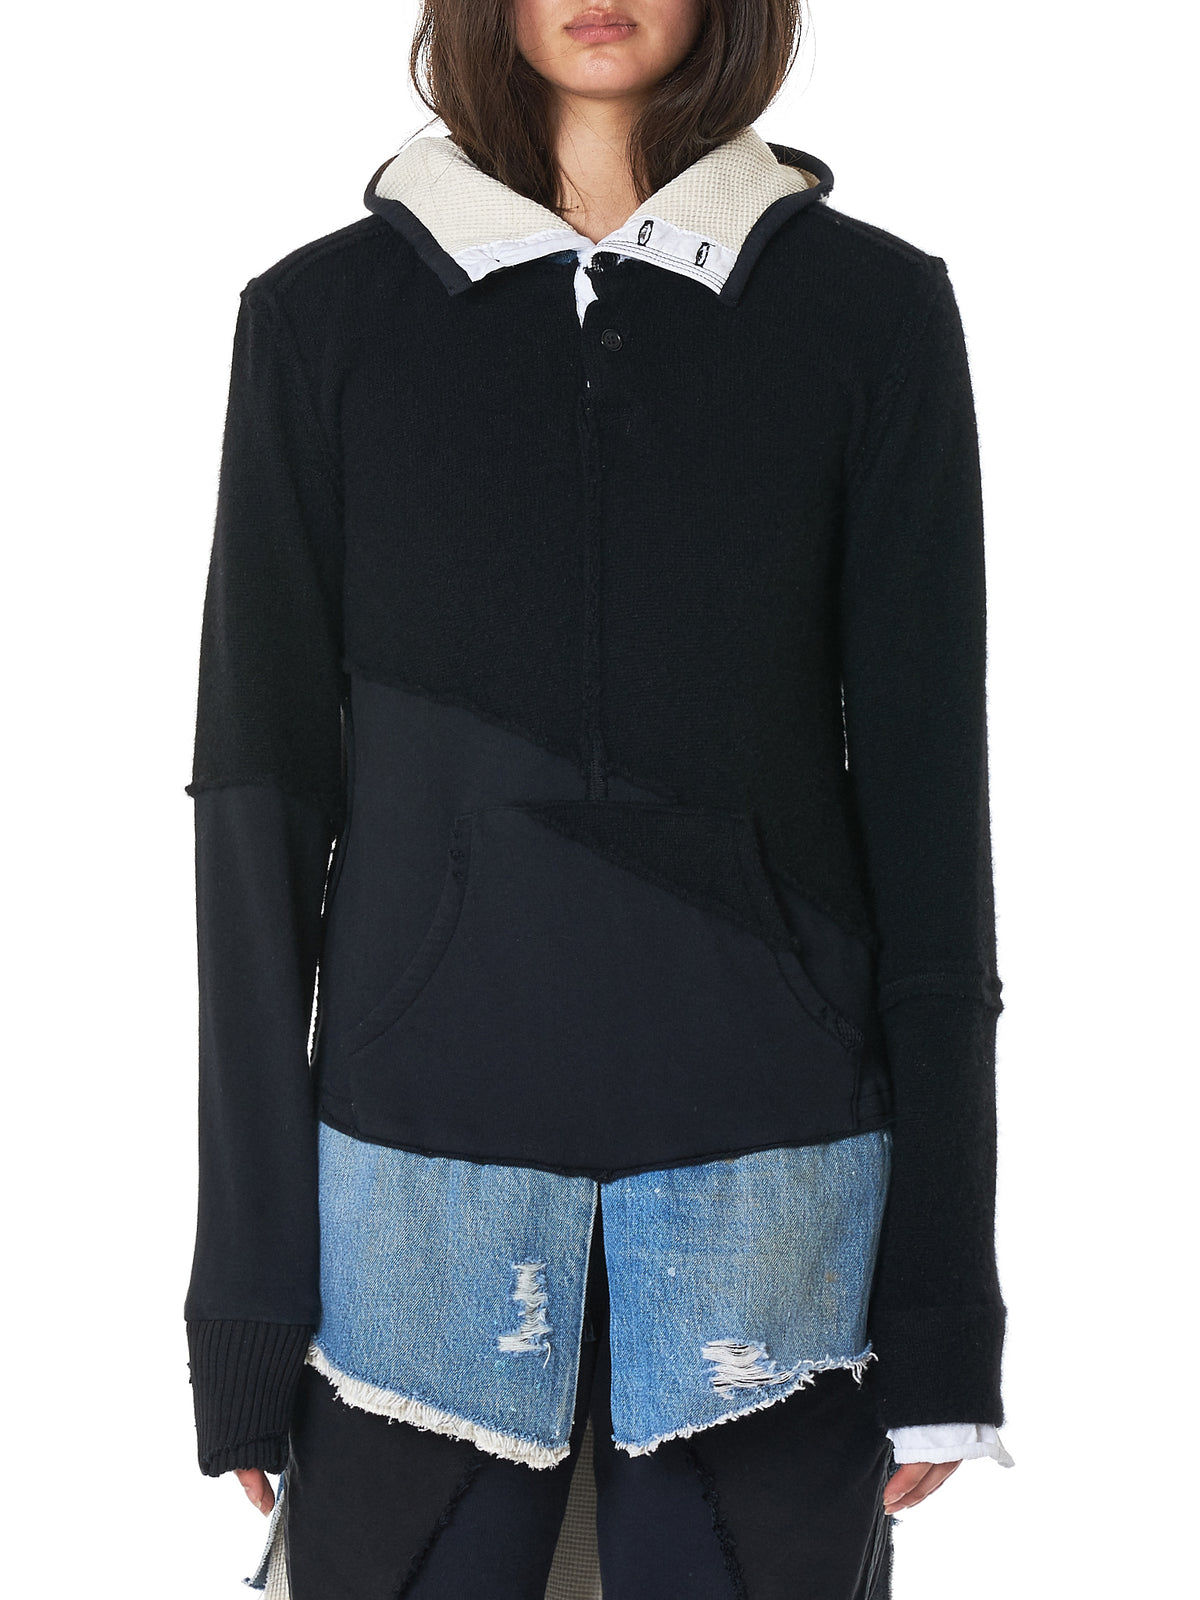 Layered Hooded Pullover (W052-BLACK-WHITE-DENIM-BLUE)